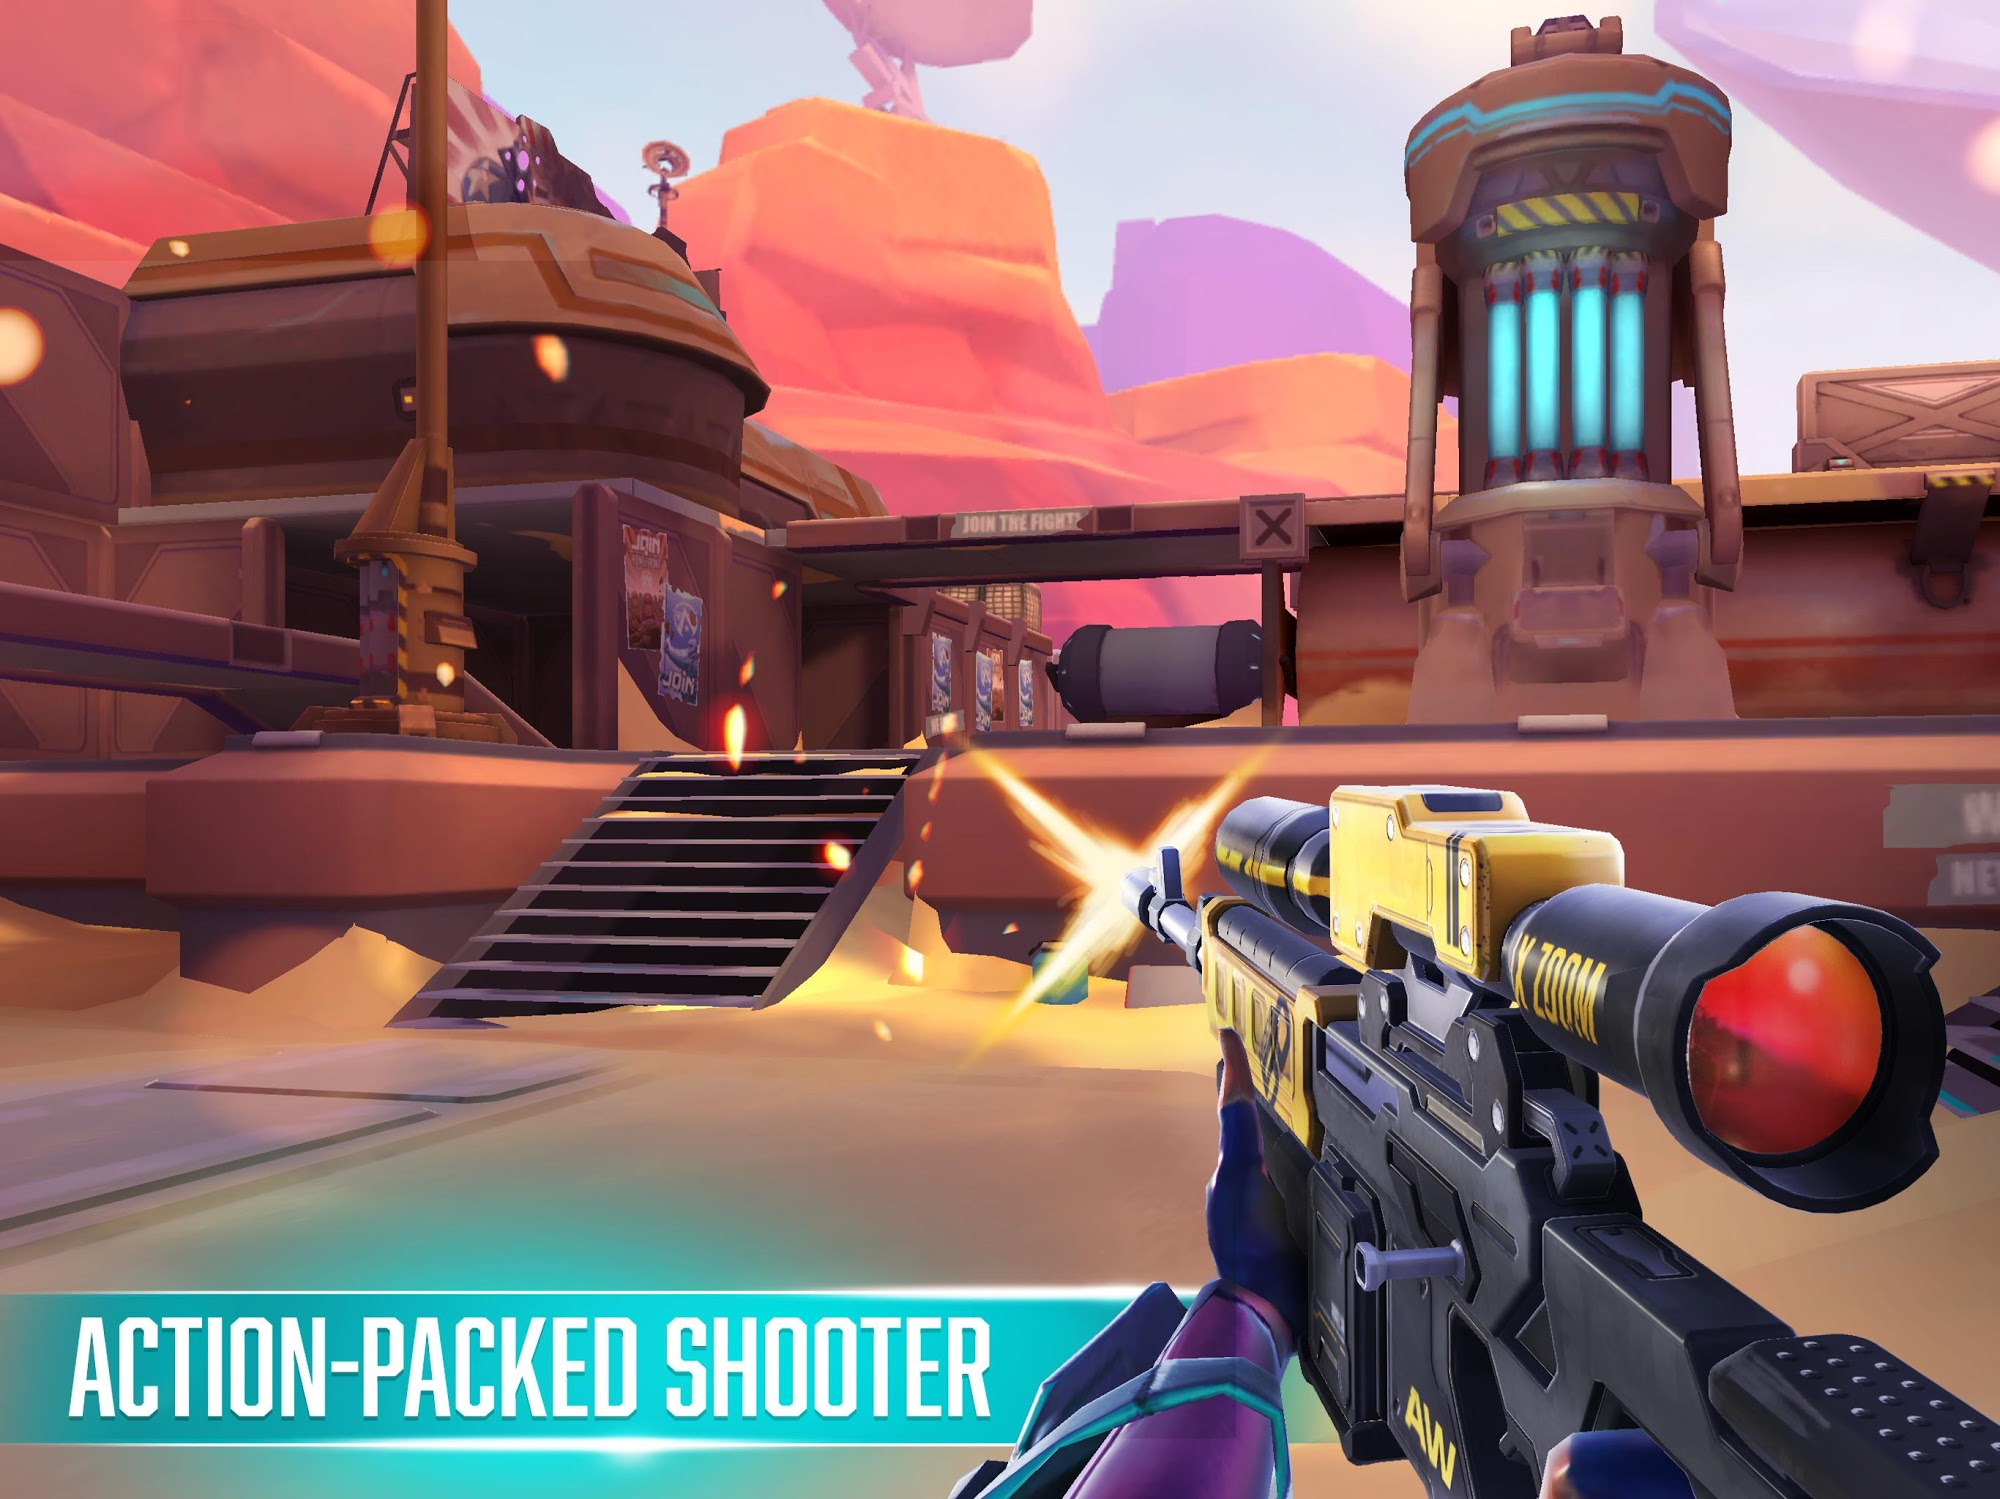 Rise: Shooter Arena for Android